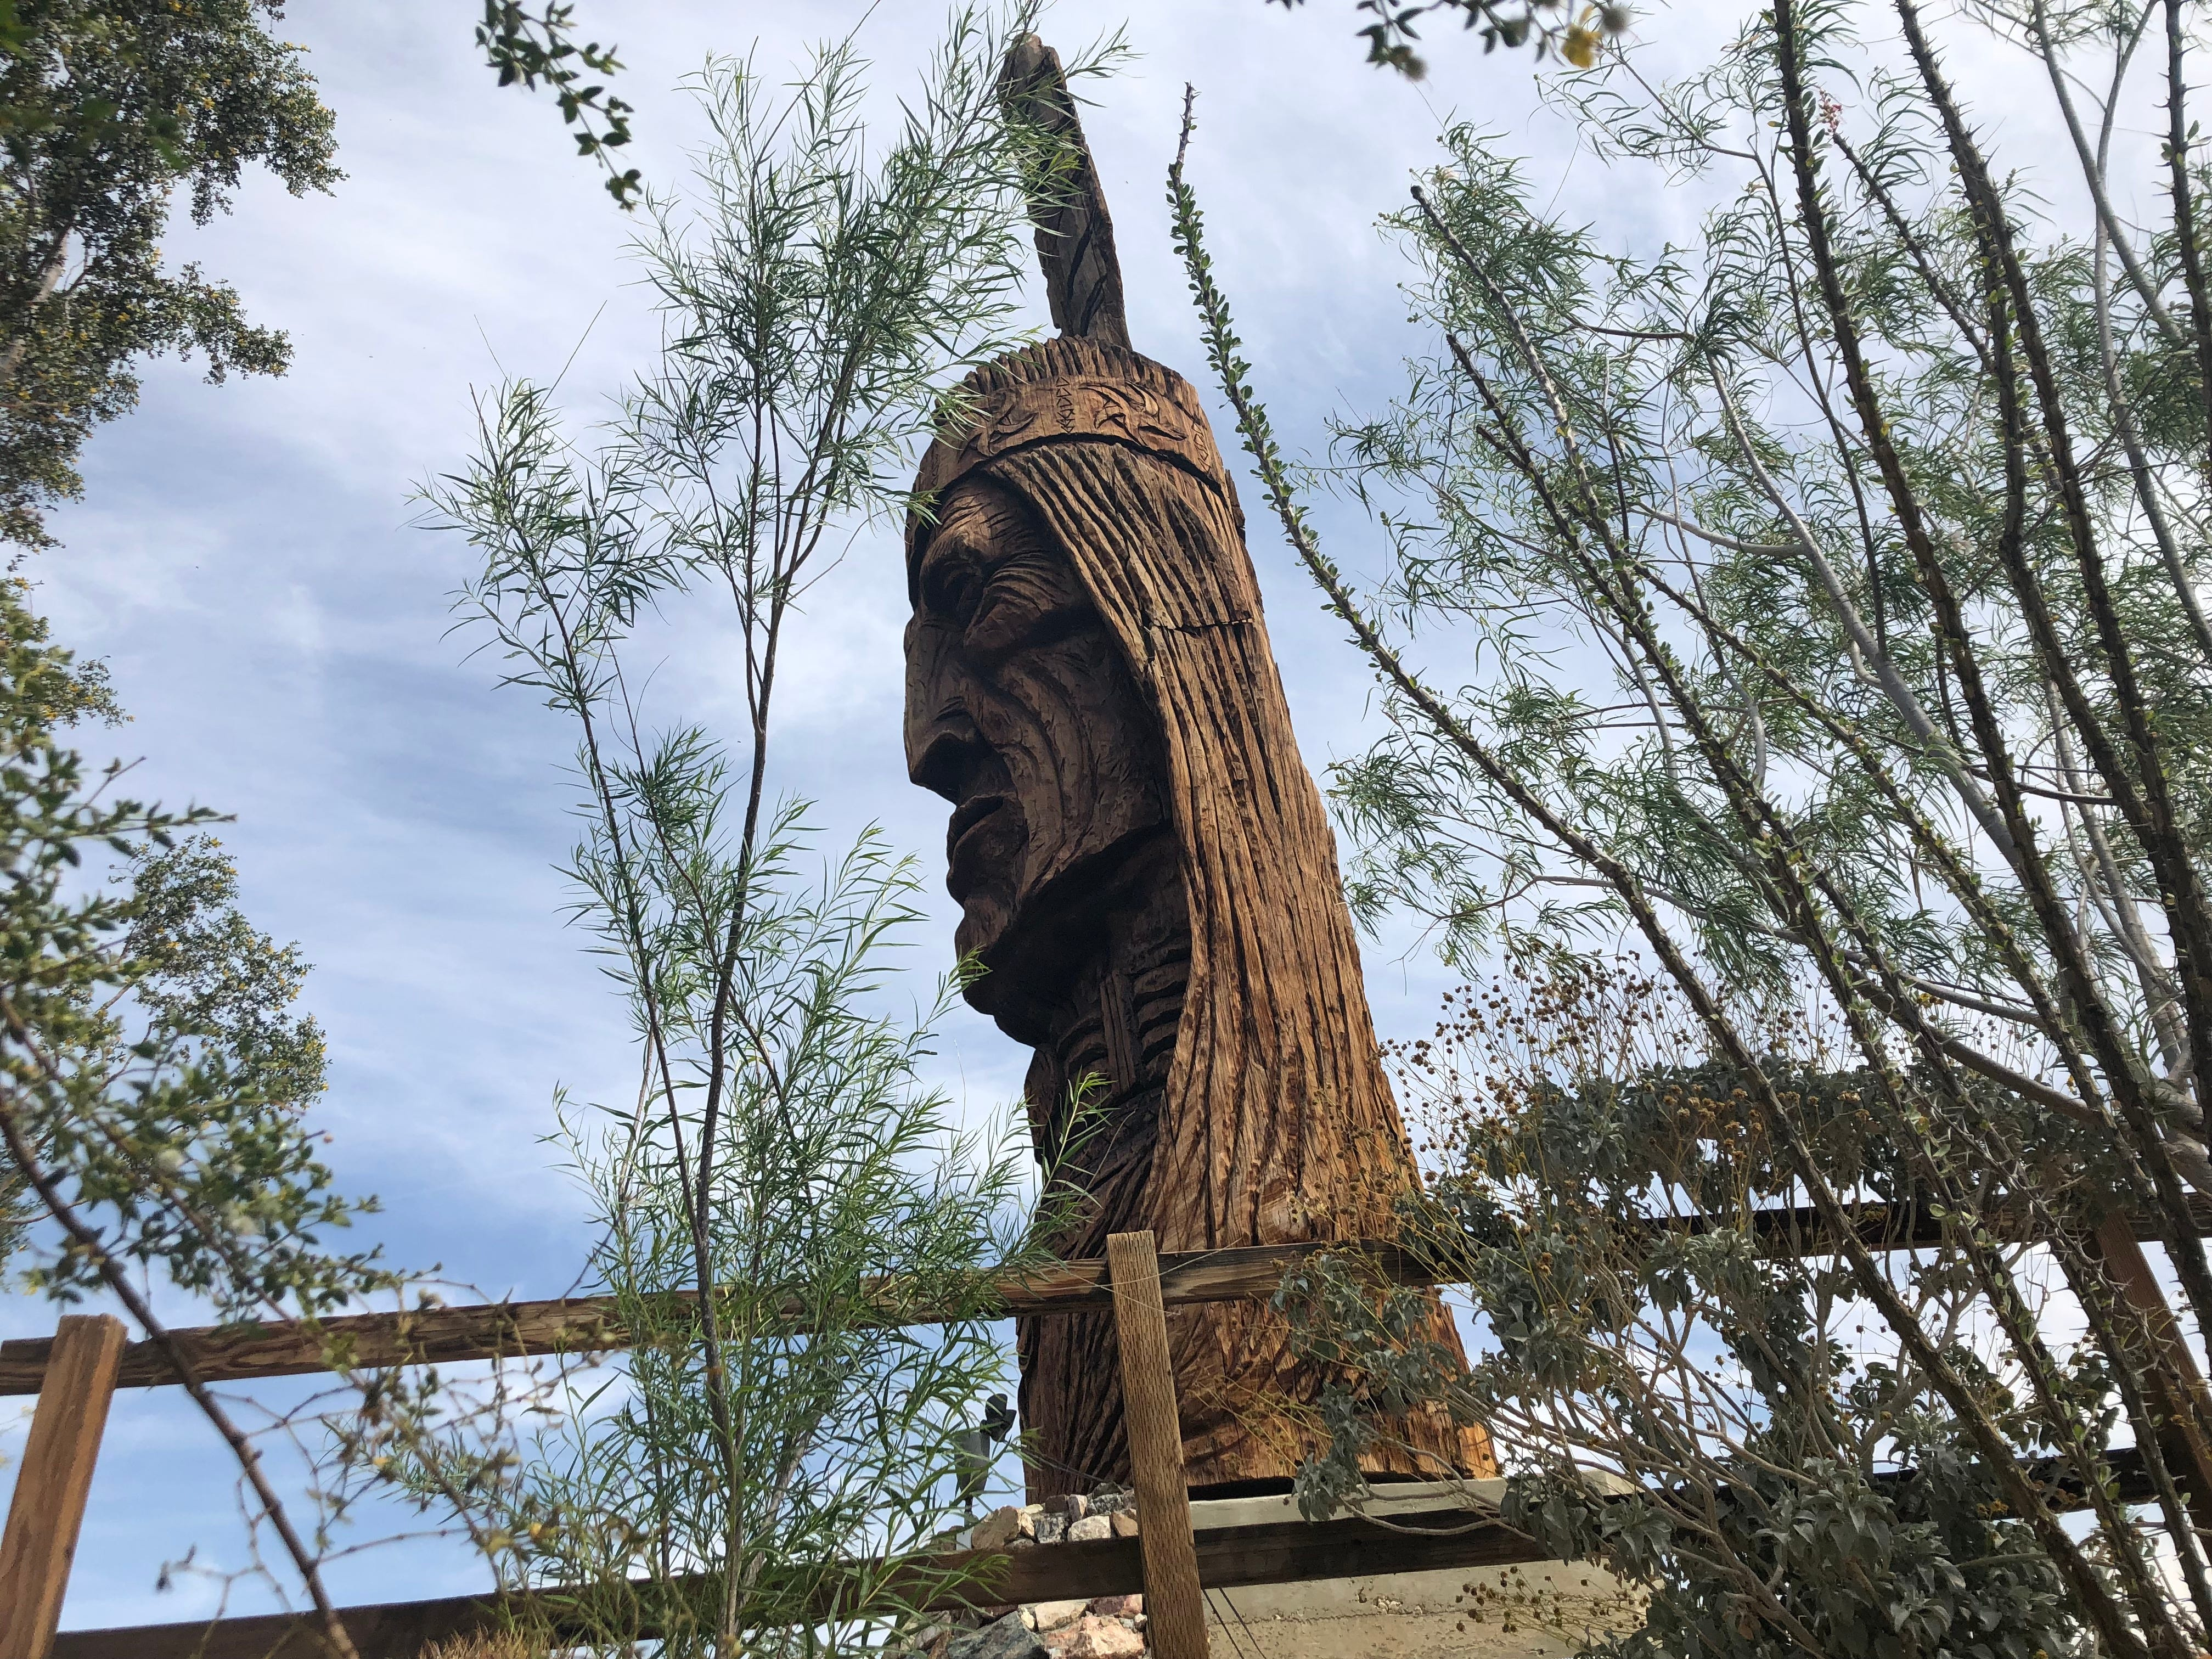 "Waokiye at Cabot's Pueblo Museum in Desert Hot Springs. Carved by artist Peter ""Wolf"" Toth, Waokiye was completed in May 1978. Waokiye's face is 22 feet tall and was carved from a single 45-ton Sequoia redwood log that was donated to the museum. The feather is 15 feet tall and was created from an Incense Cedar from Idyllwild. Waokiye means ""traditional helper"" in the Lakota language."